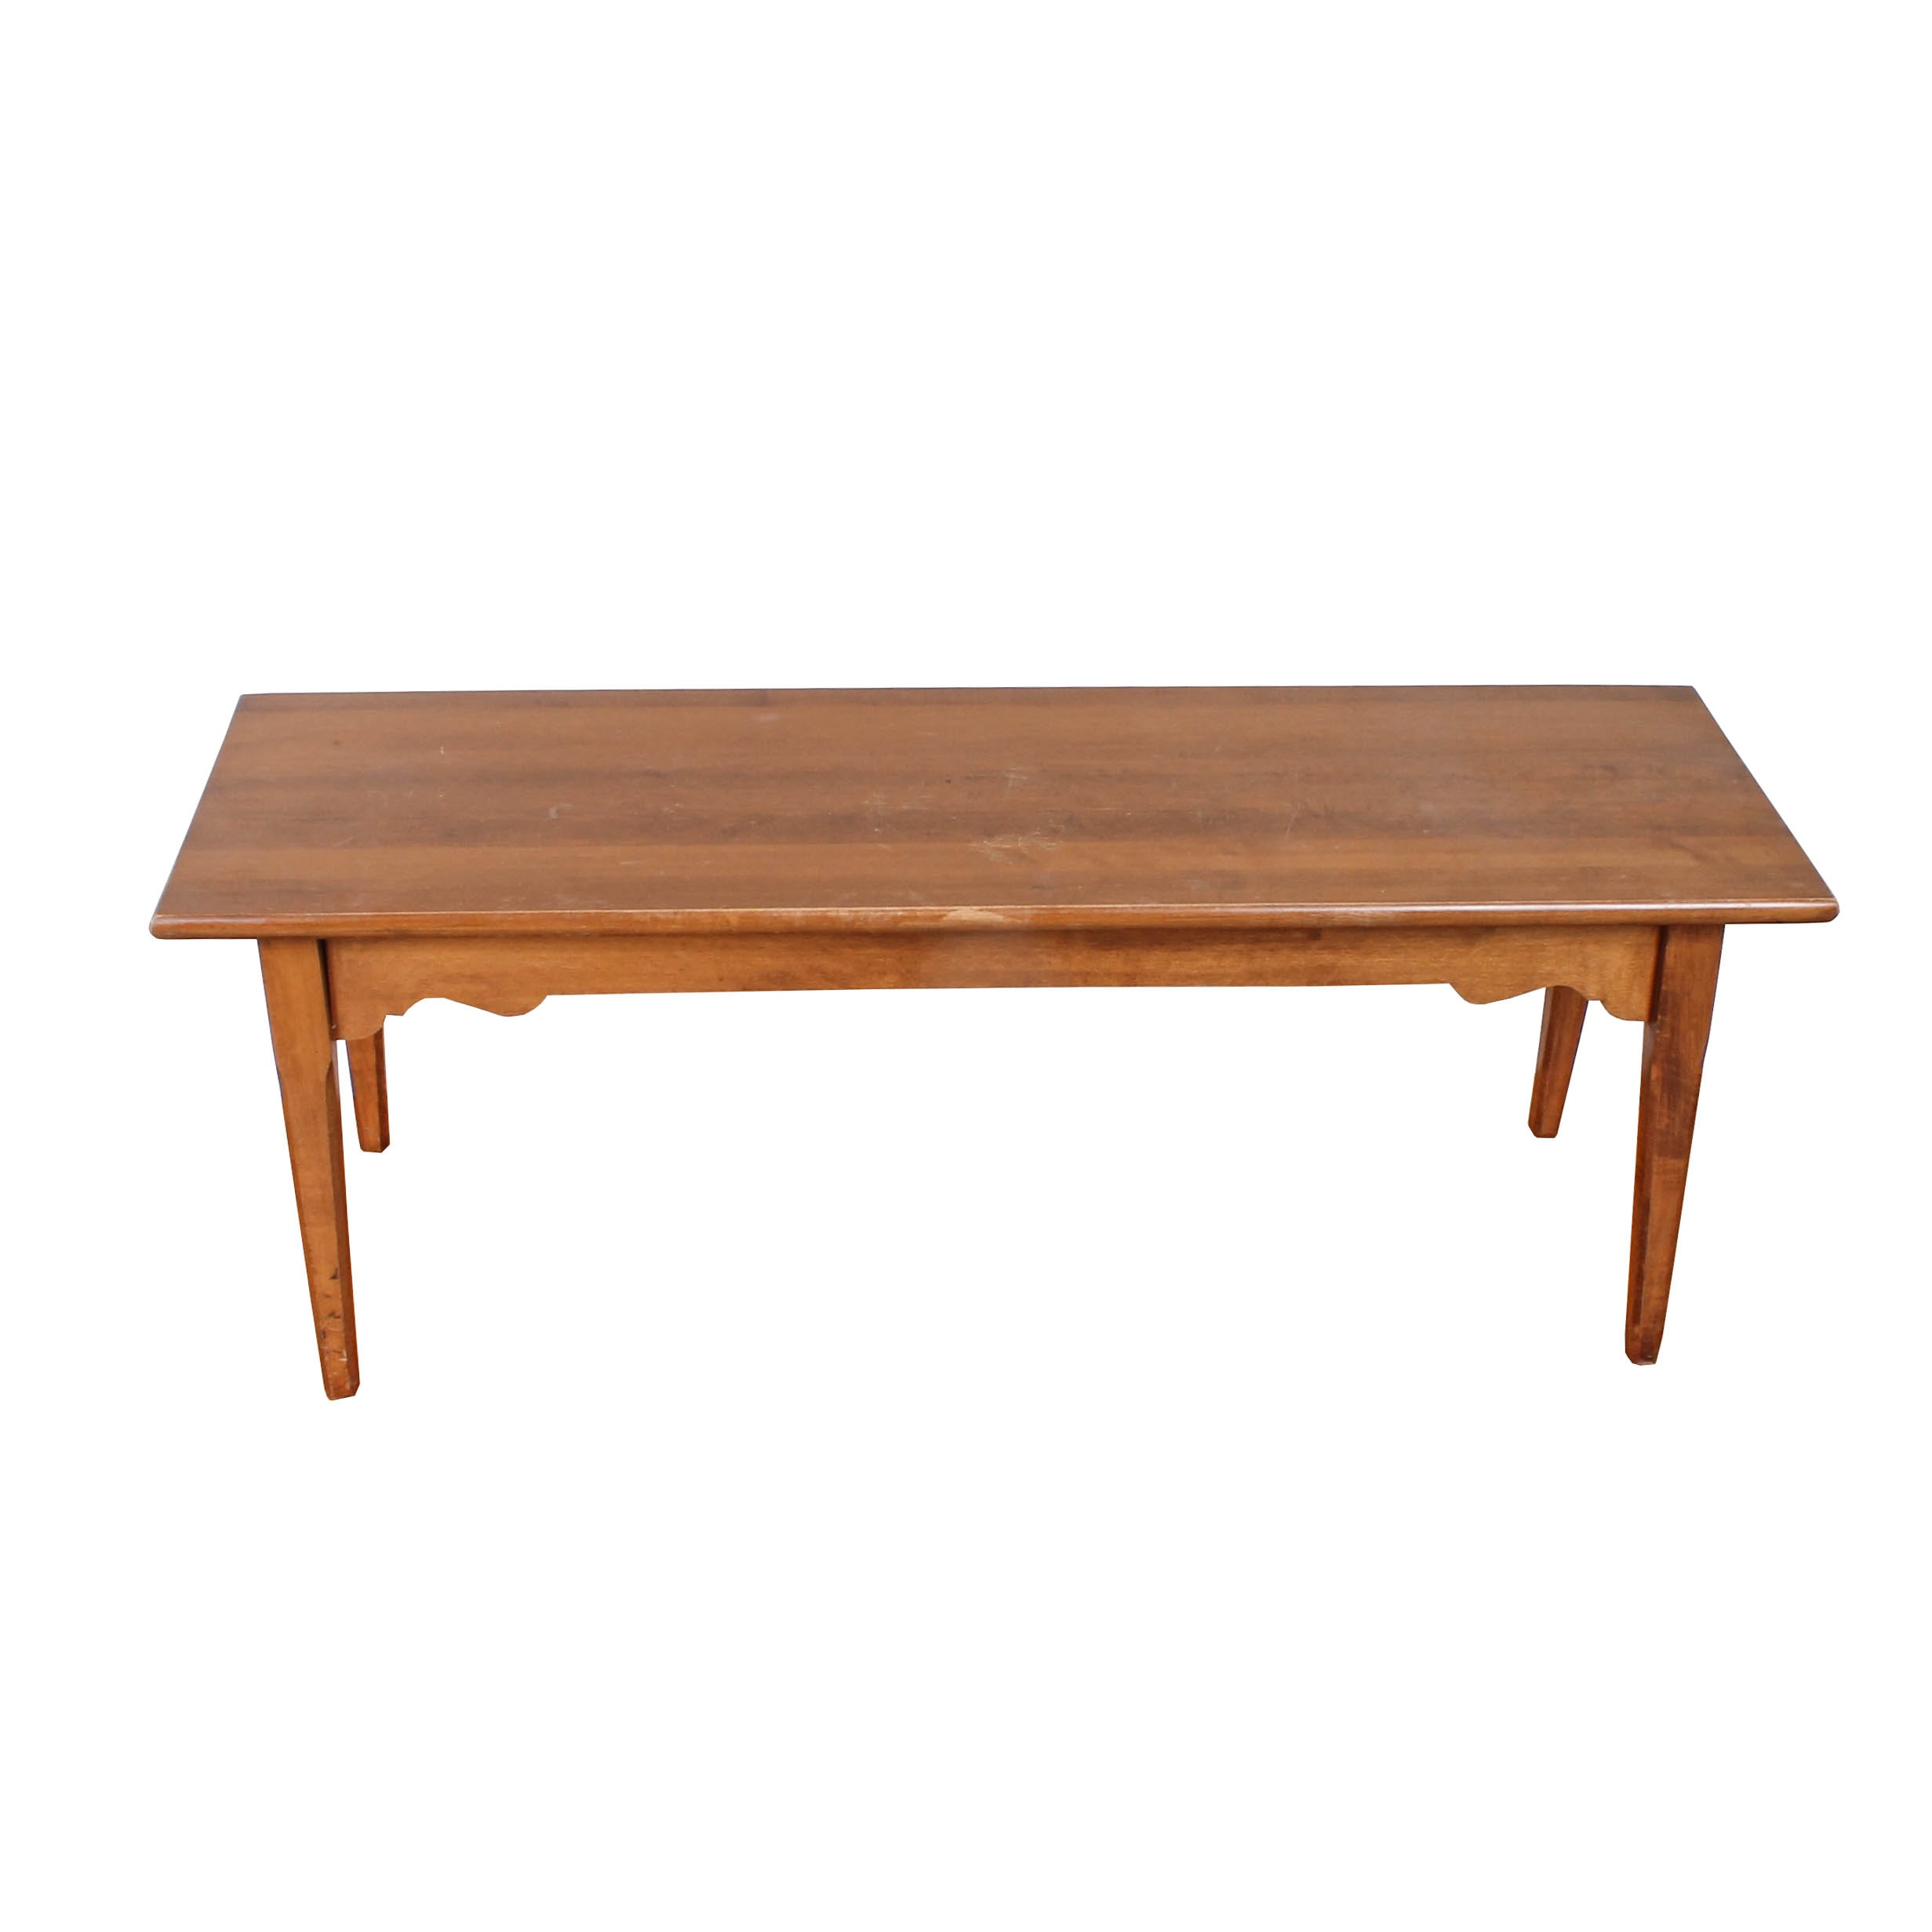 Vintage O'Hearn Maple Coffee Table